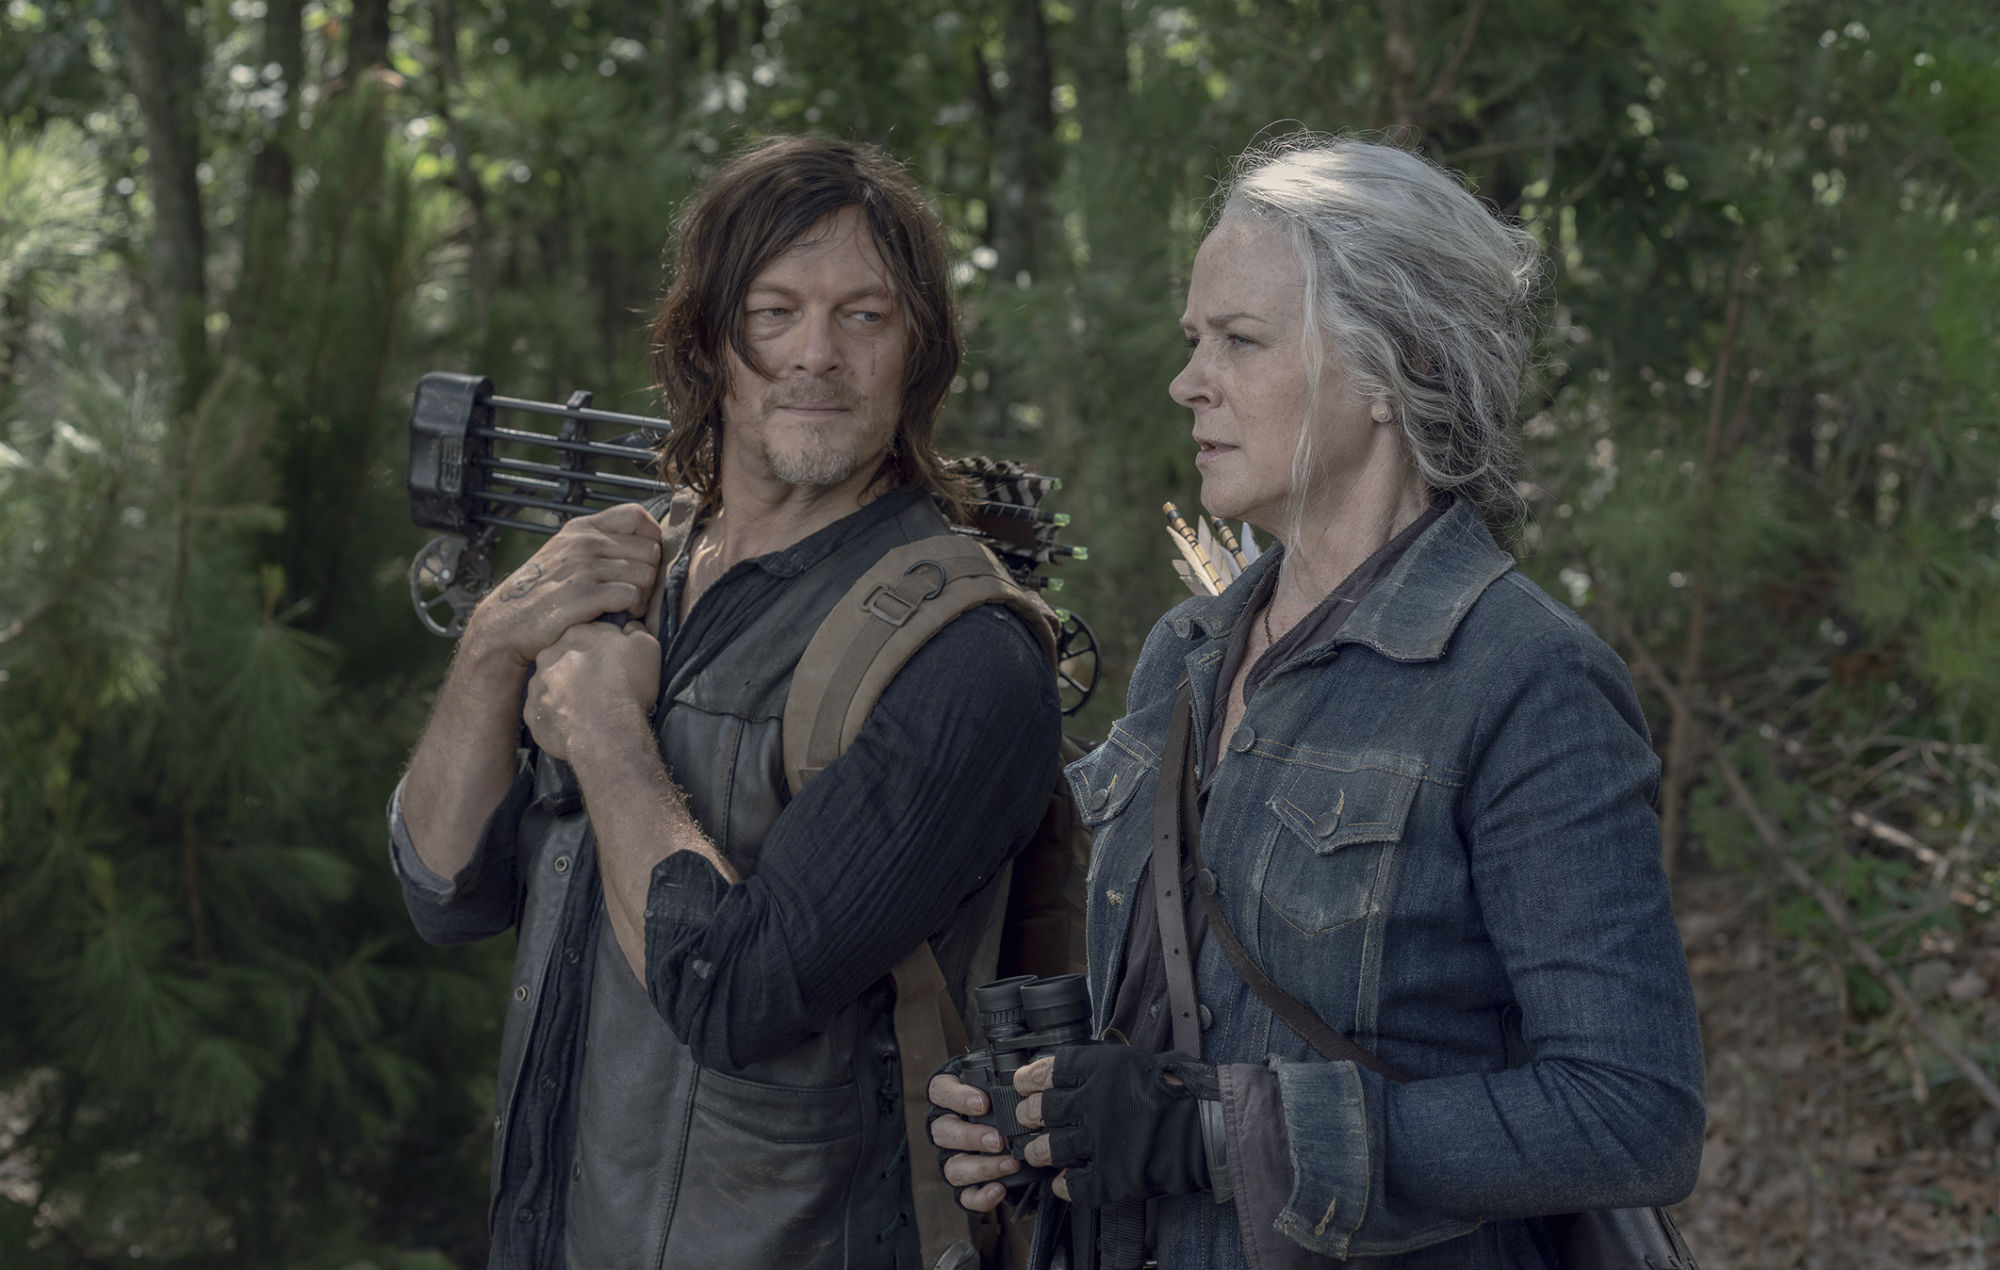 'The Walking Dead' ending changed plans for Daryl and Carol spin-off